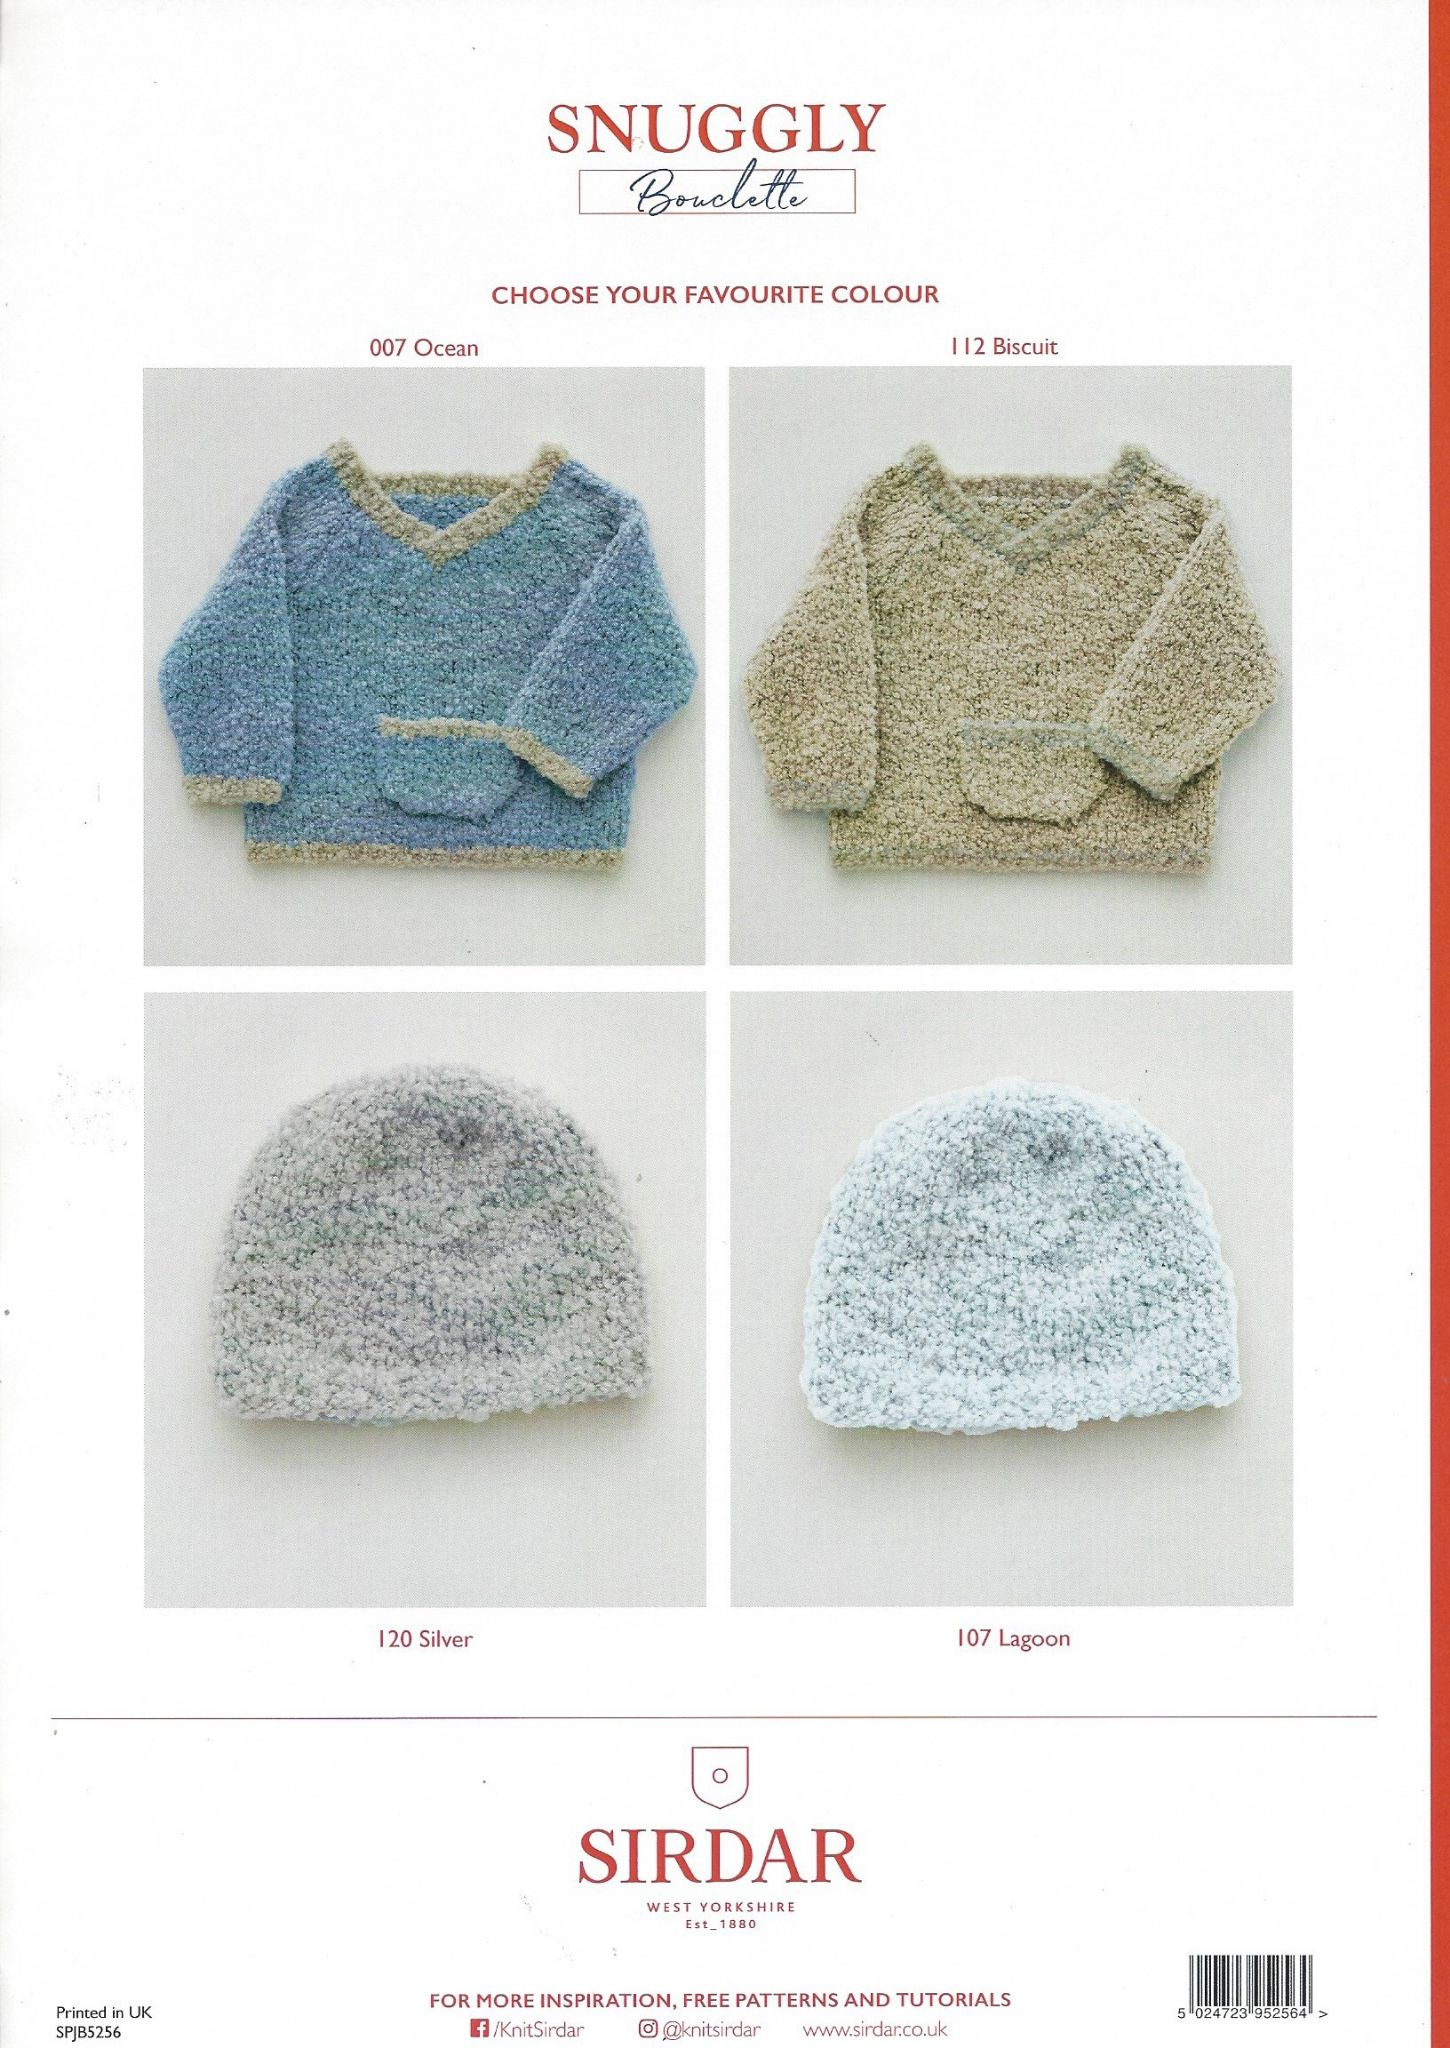 Sirdar Snuggly Bouclette Knitting Pattern Booklet - 5256 Hat